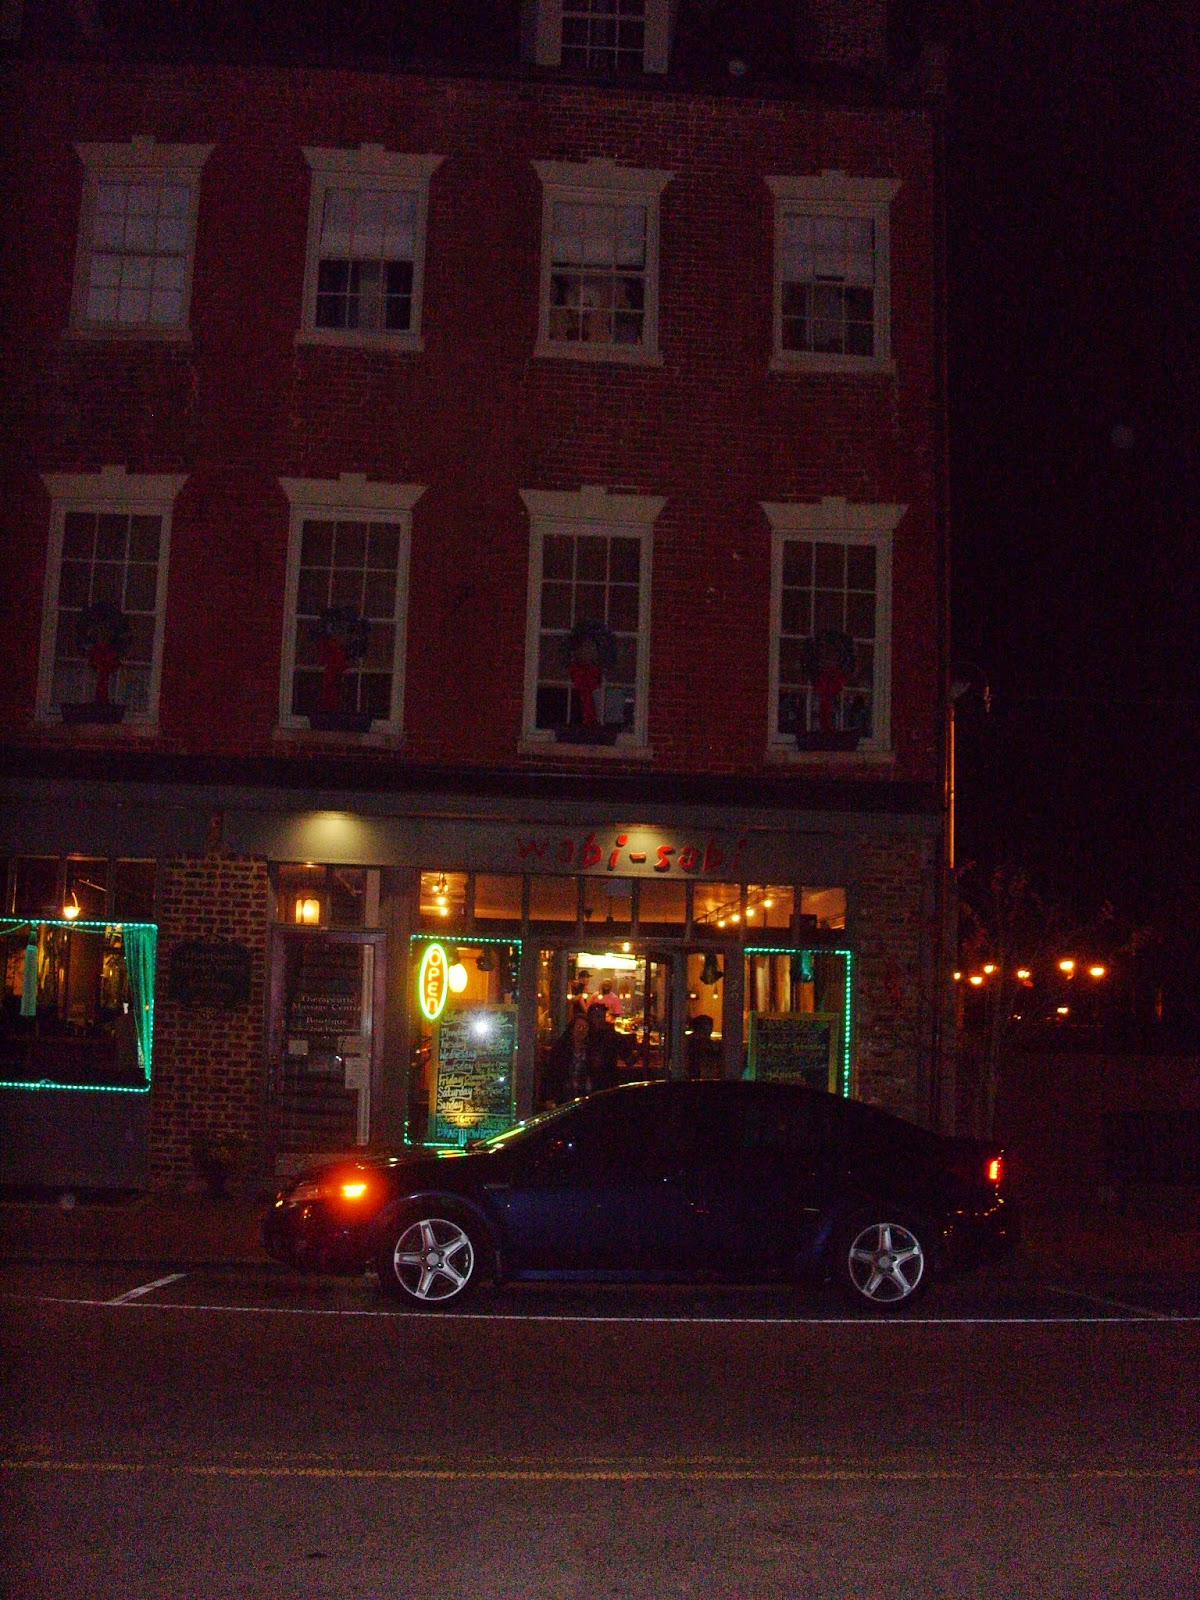 Need Some Good Haunted Places Not In The Top Ten Or Twenties To Visit?e  To Petersburg, Virginia Between The The Good Food At The Eateries,  Shopping,